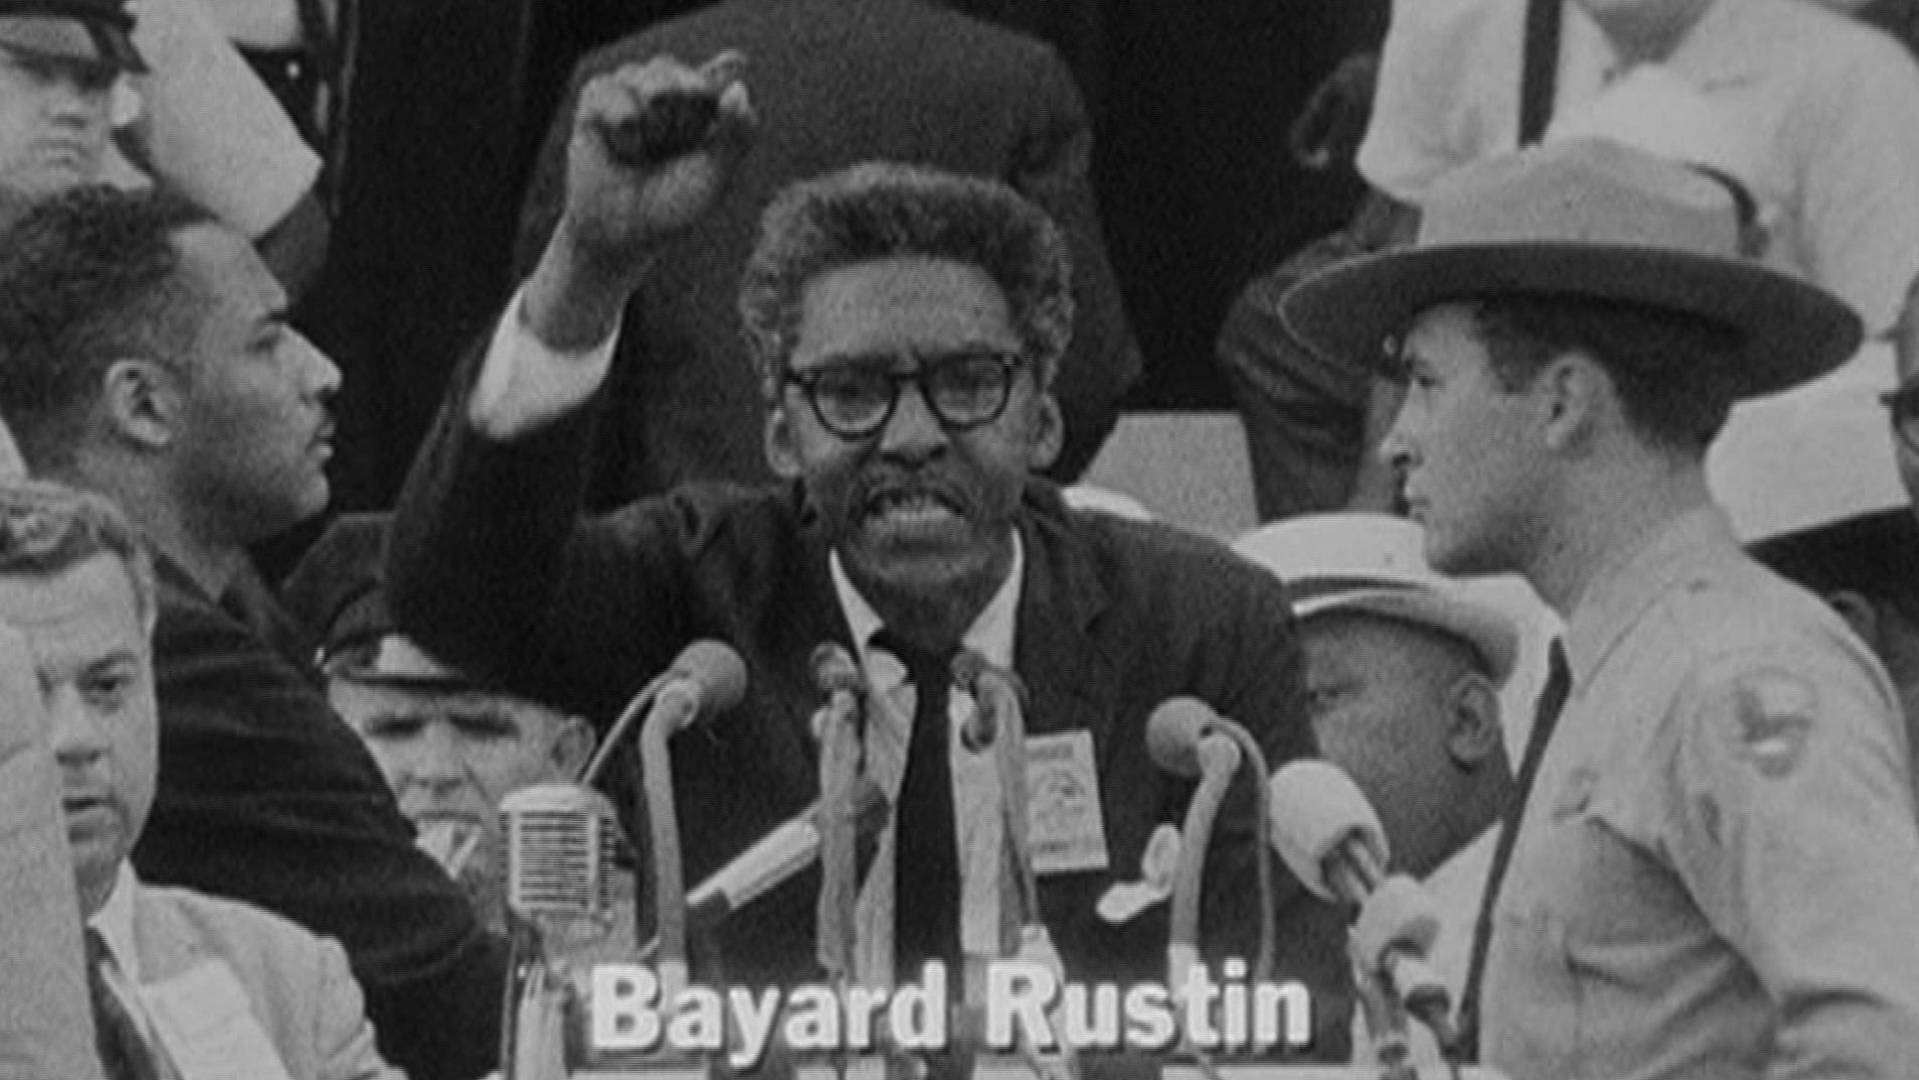 Bayard Rustin speaks at the famous 1963 March on Washington.